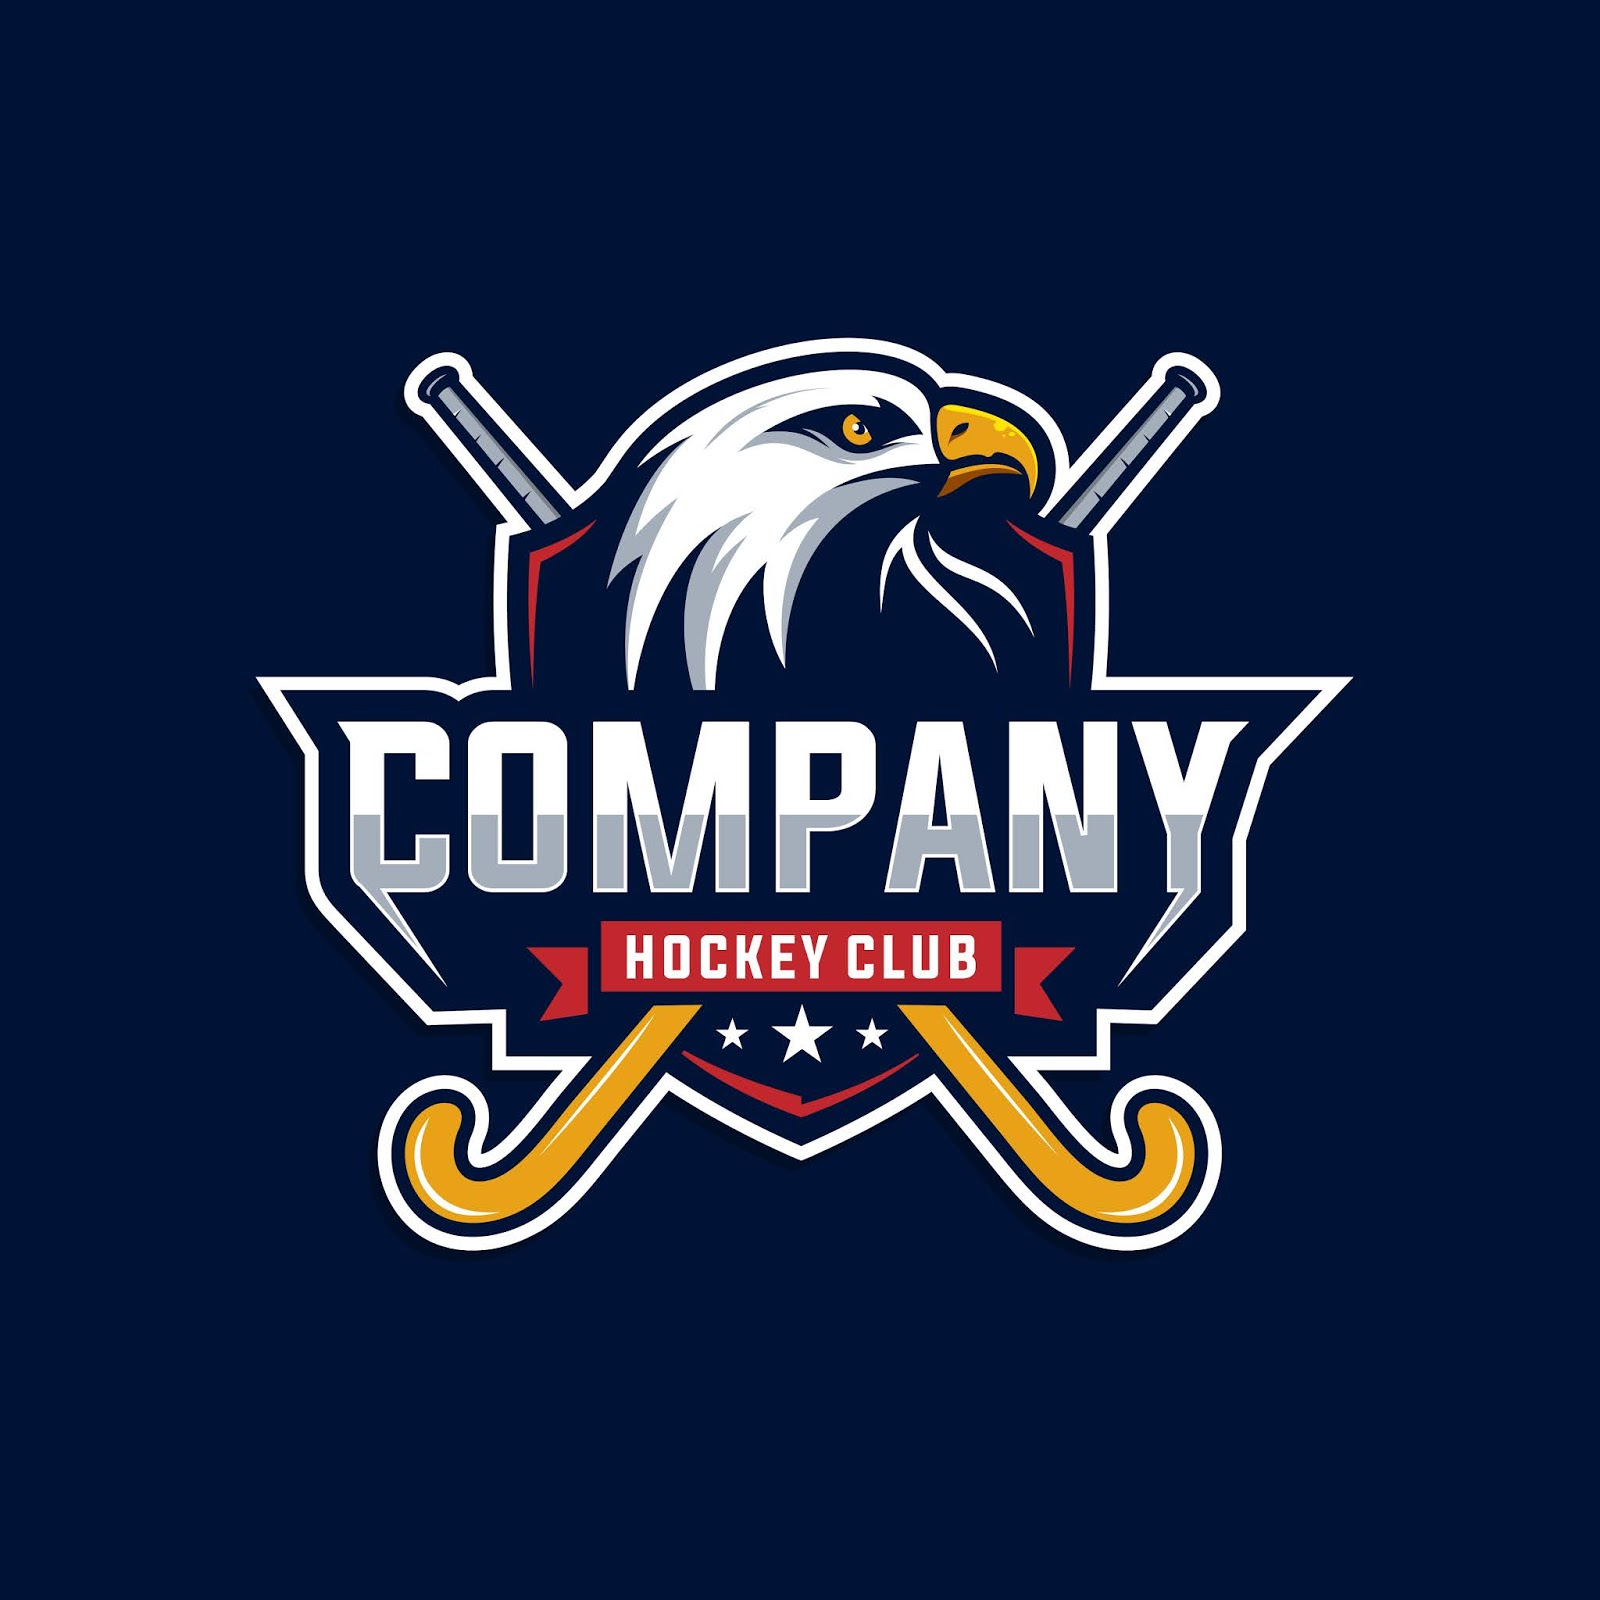 Eagle Hockey Club Logo Free Download Vector CDR, AI, EPS and PNG Formats